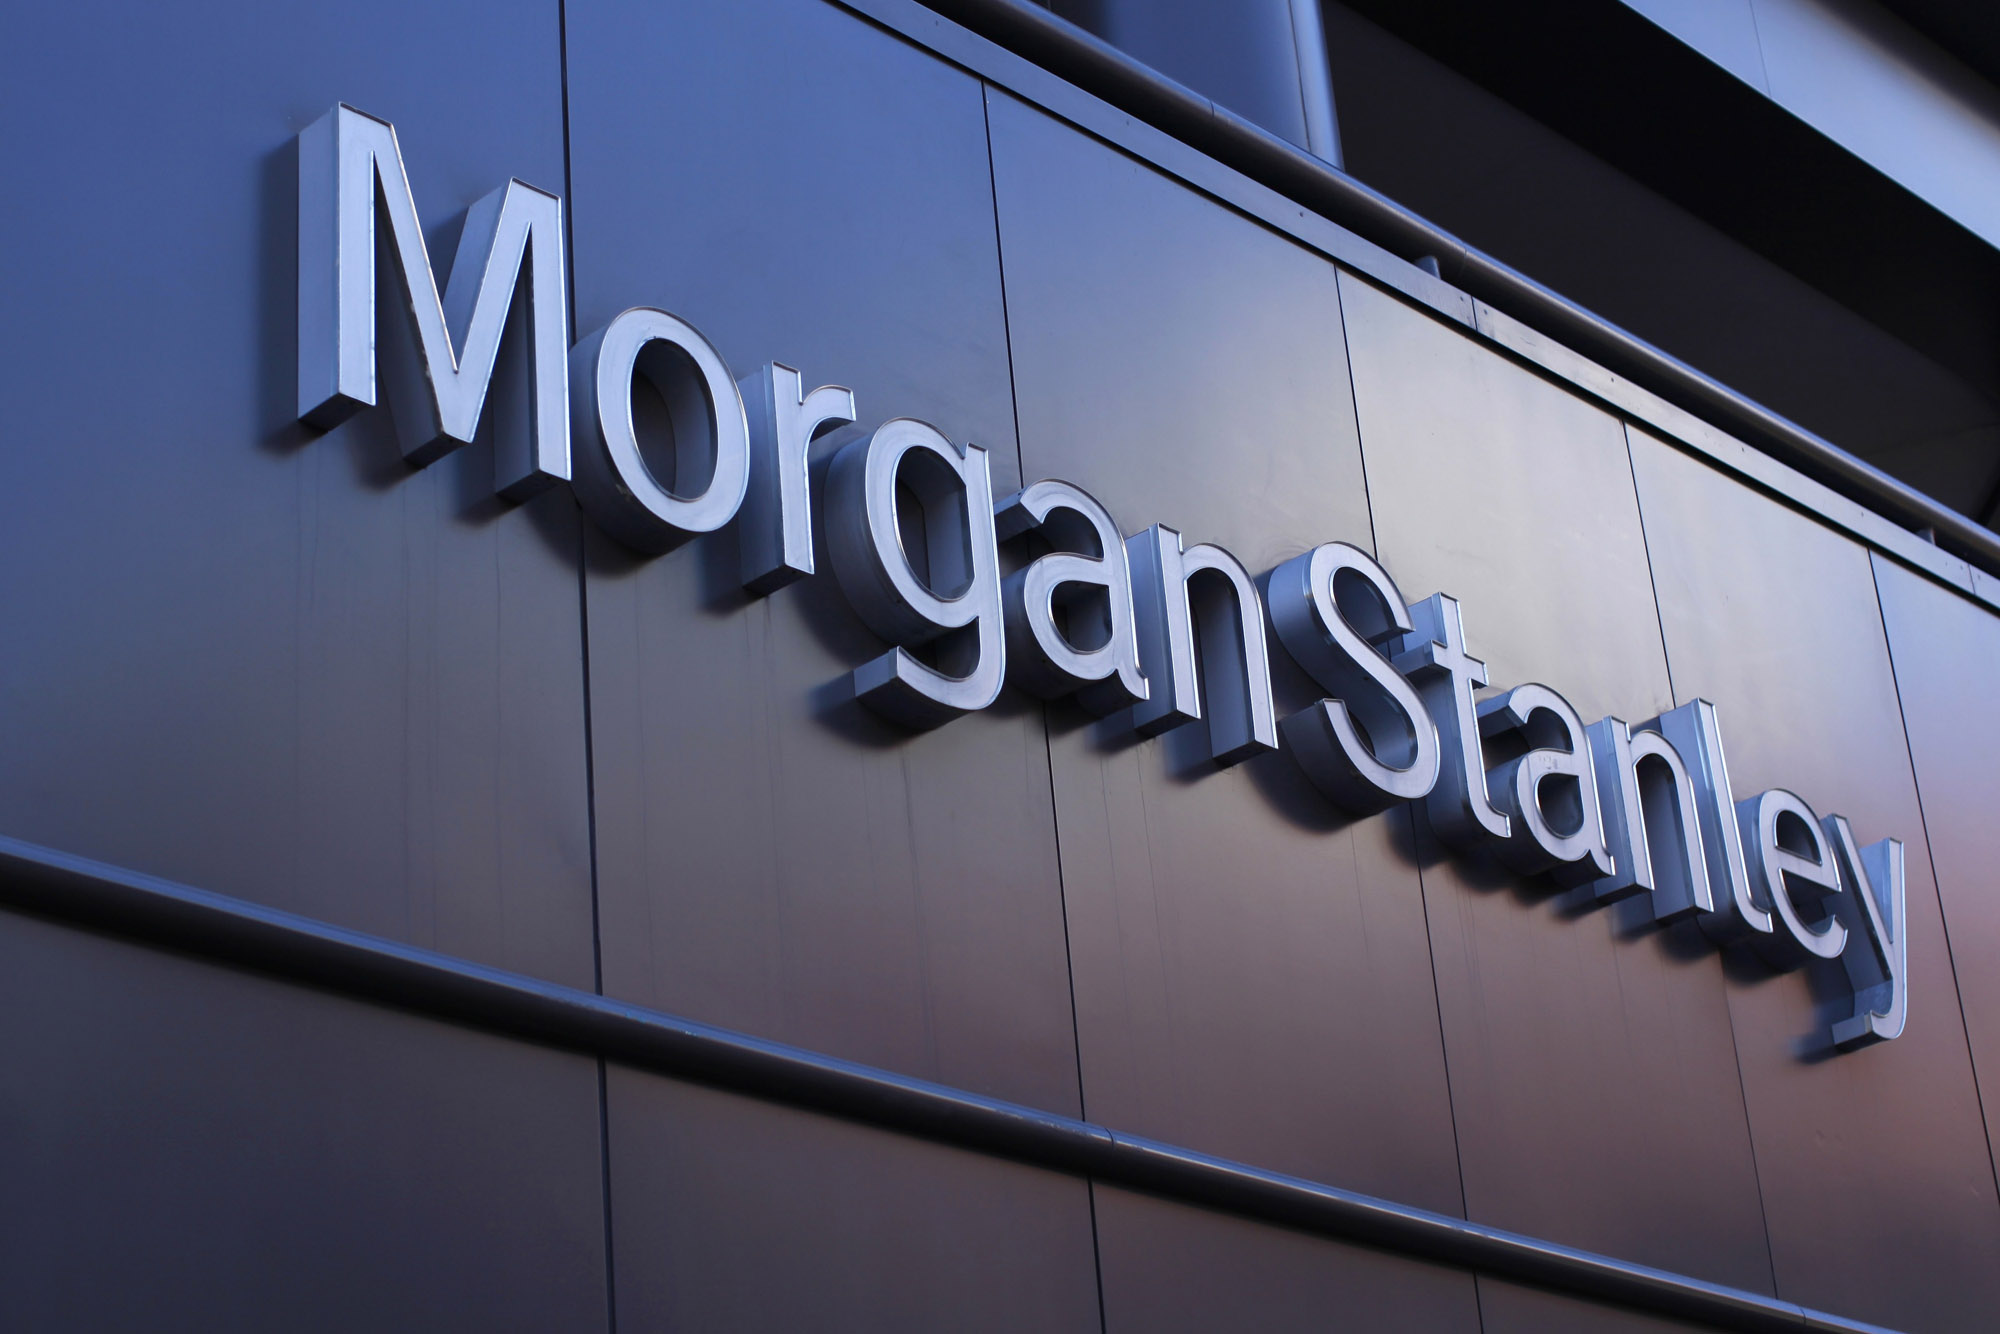 Morgan Stanley Senior Bankers are leaving